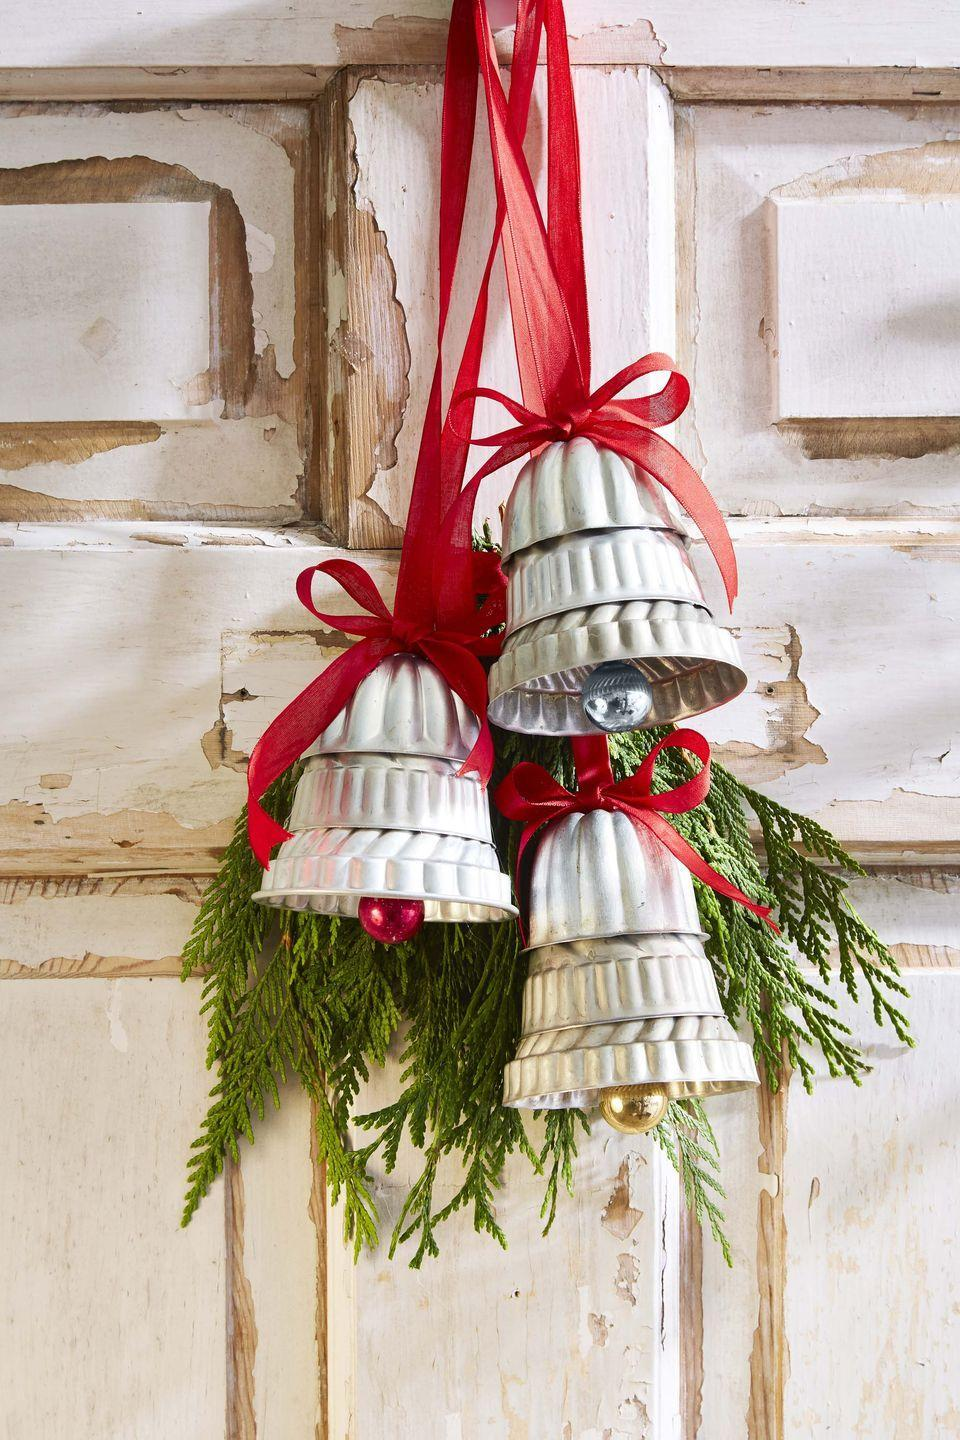 <p>The perfect gift for the friend who loves to cook. Hang on the stove hood or in the kitchen window, there cooking mold bells will help ring in the cheer.<strong><br></strong></p><p><strong>To make:</strong> Stack mini molds and Bundt pans to form bell shapes; affix together using epoxy. Hot-glue small ornaments to the bottom to create the clappers. Glue ribbon loops and a bow to the top for hanging. Add a swag of greenery, if desired.</p>